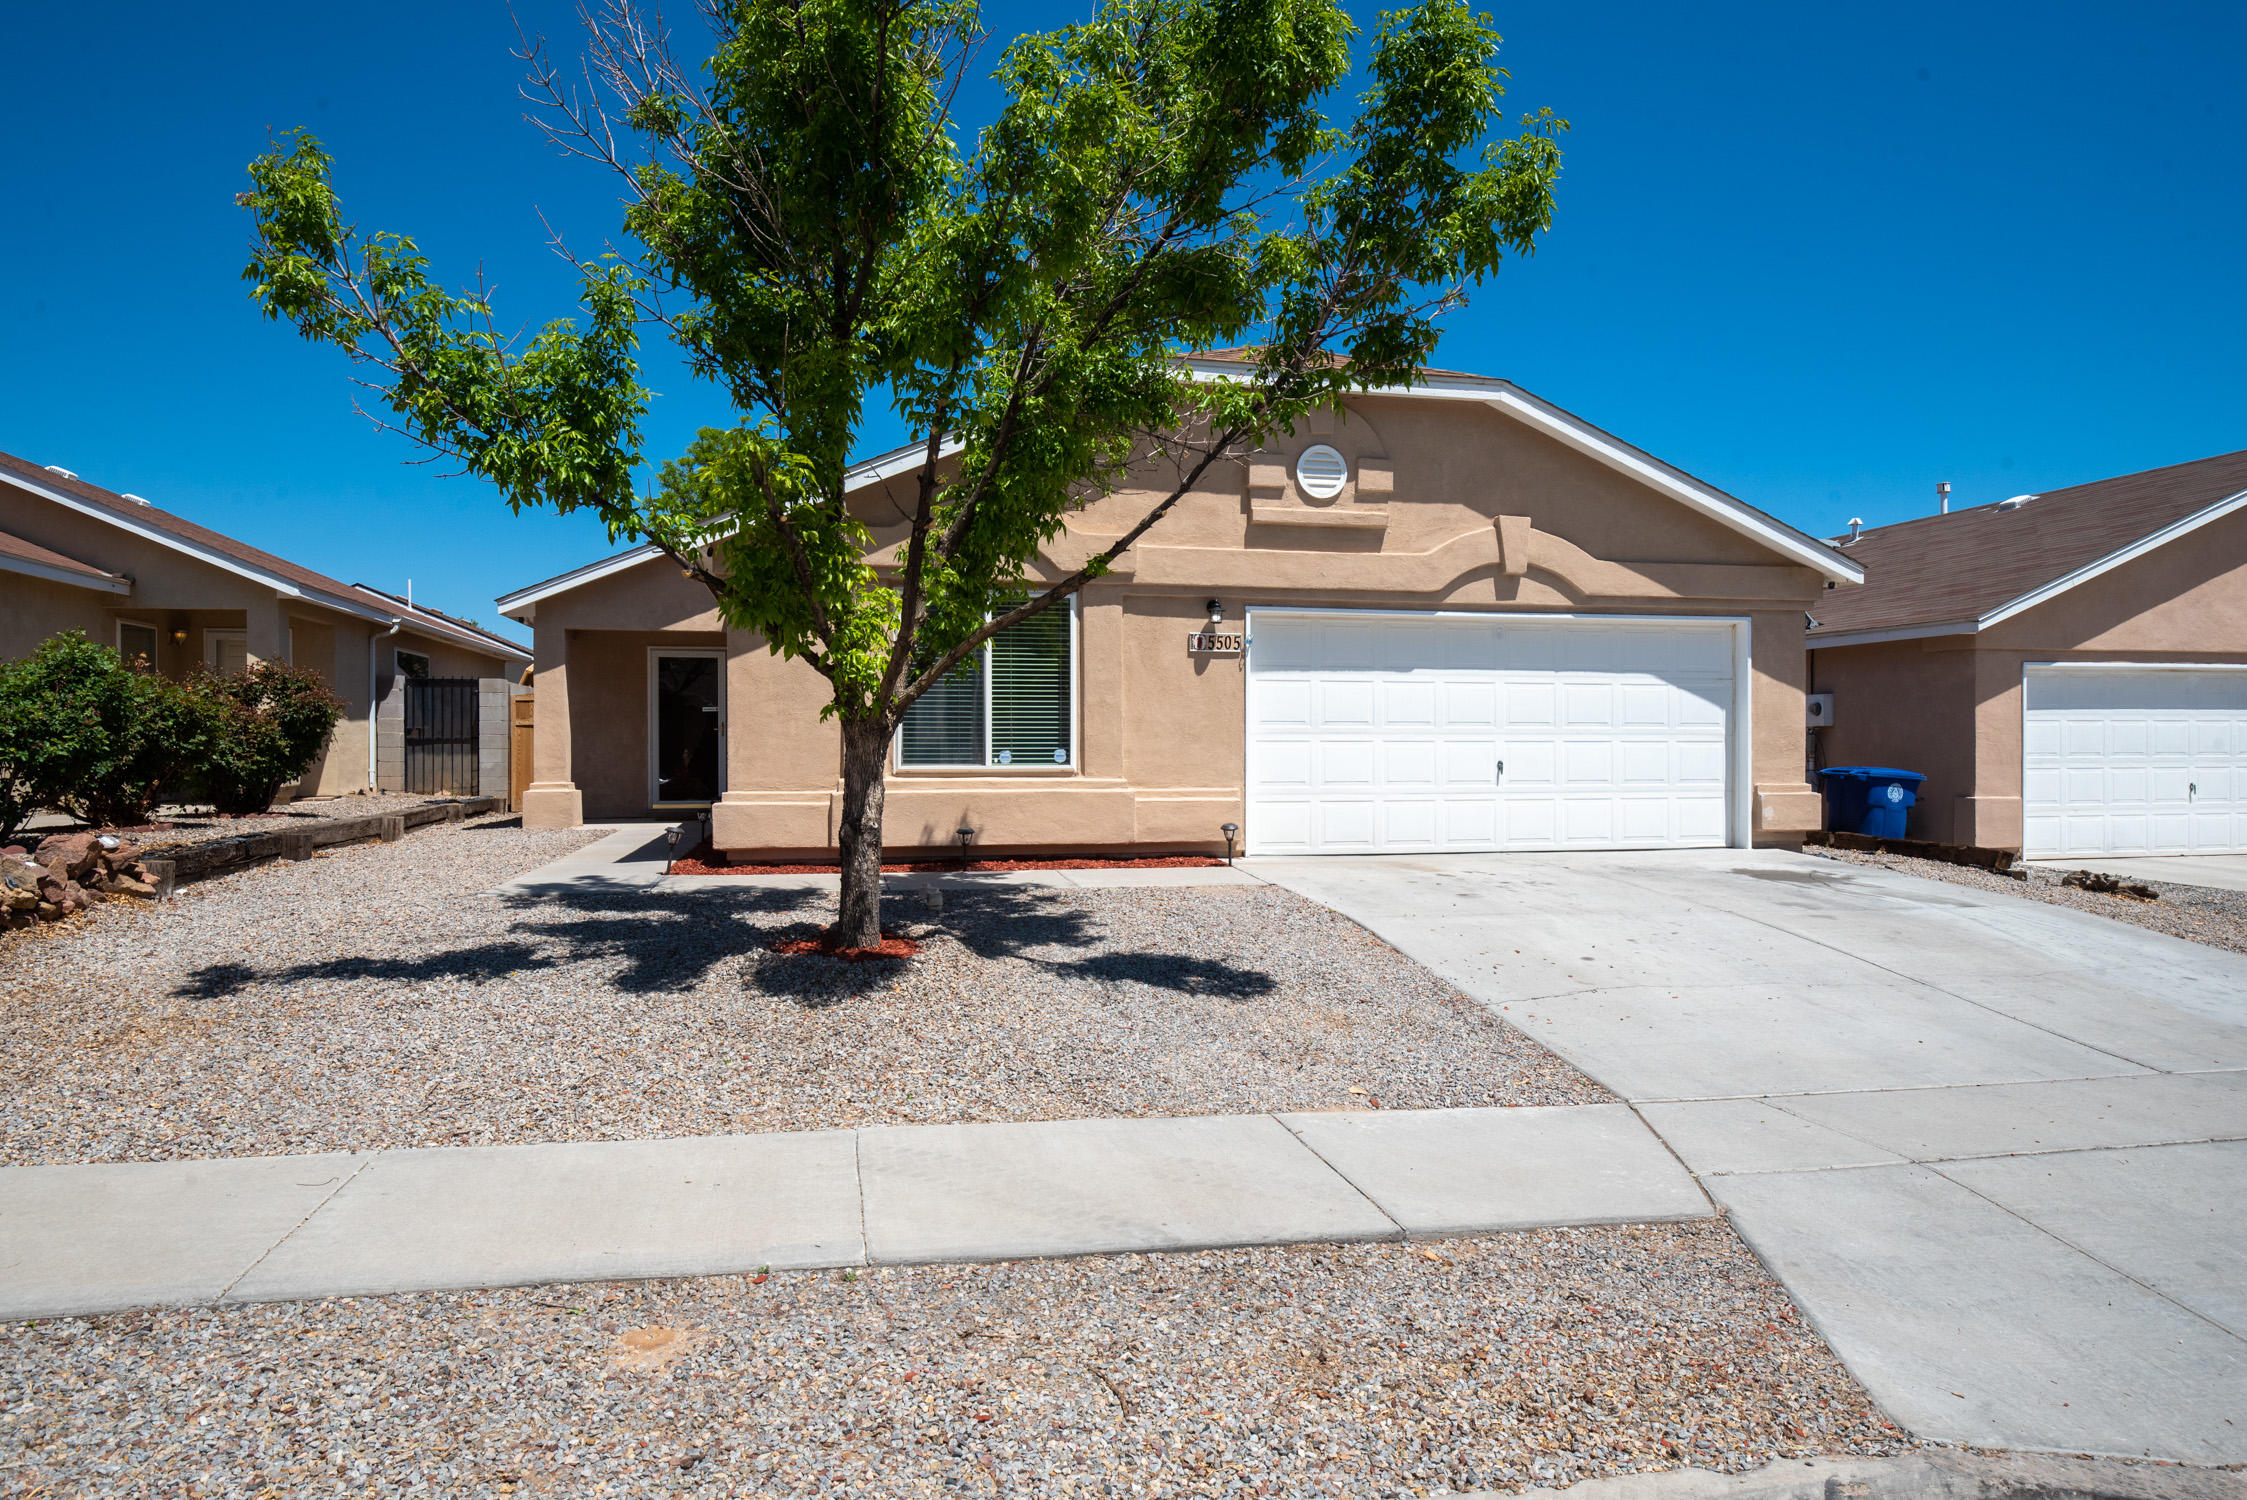 Pride in ownership shines through on this 3 bed 2 bath beauty! Tons of upgrades! Remodeled bathrooms, new floors and carpet, Granite with beautifully refreshed cabinets, black stainless appliances, the list goes on and on.